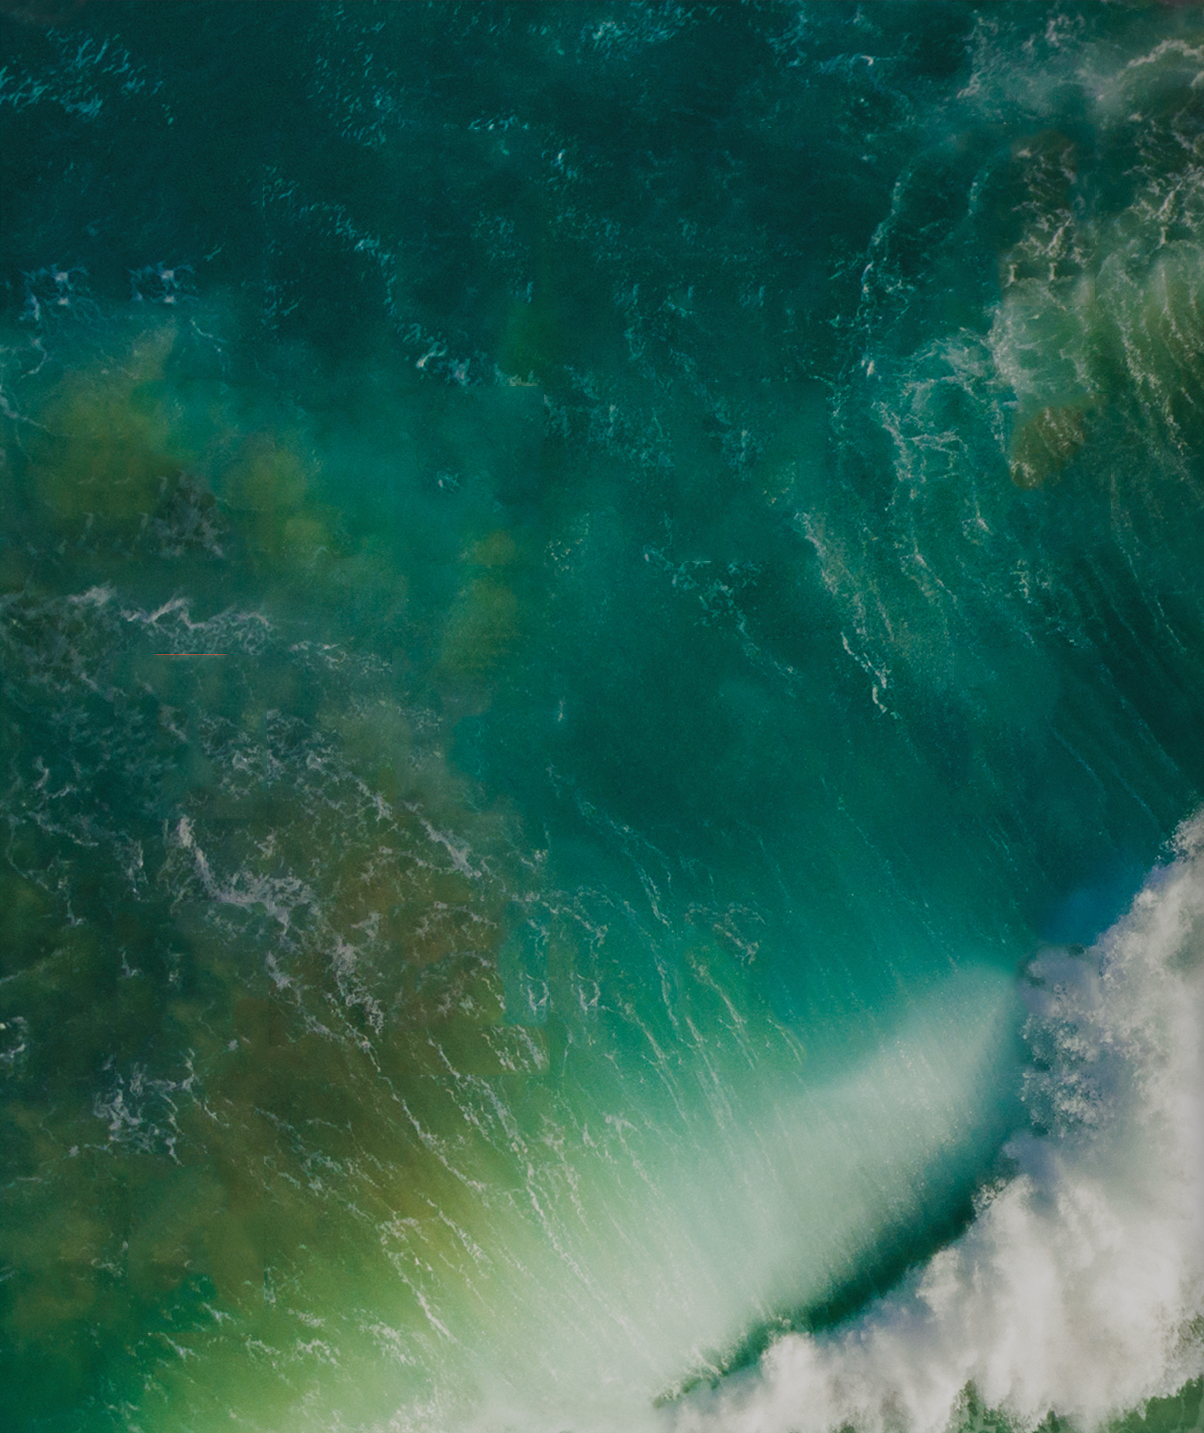 Download the new iOS 10 wallpapers for iPhone and iPad 1204x1433